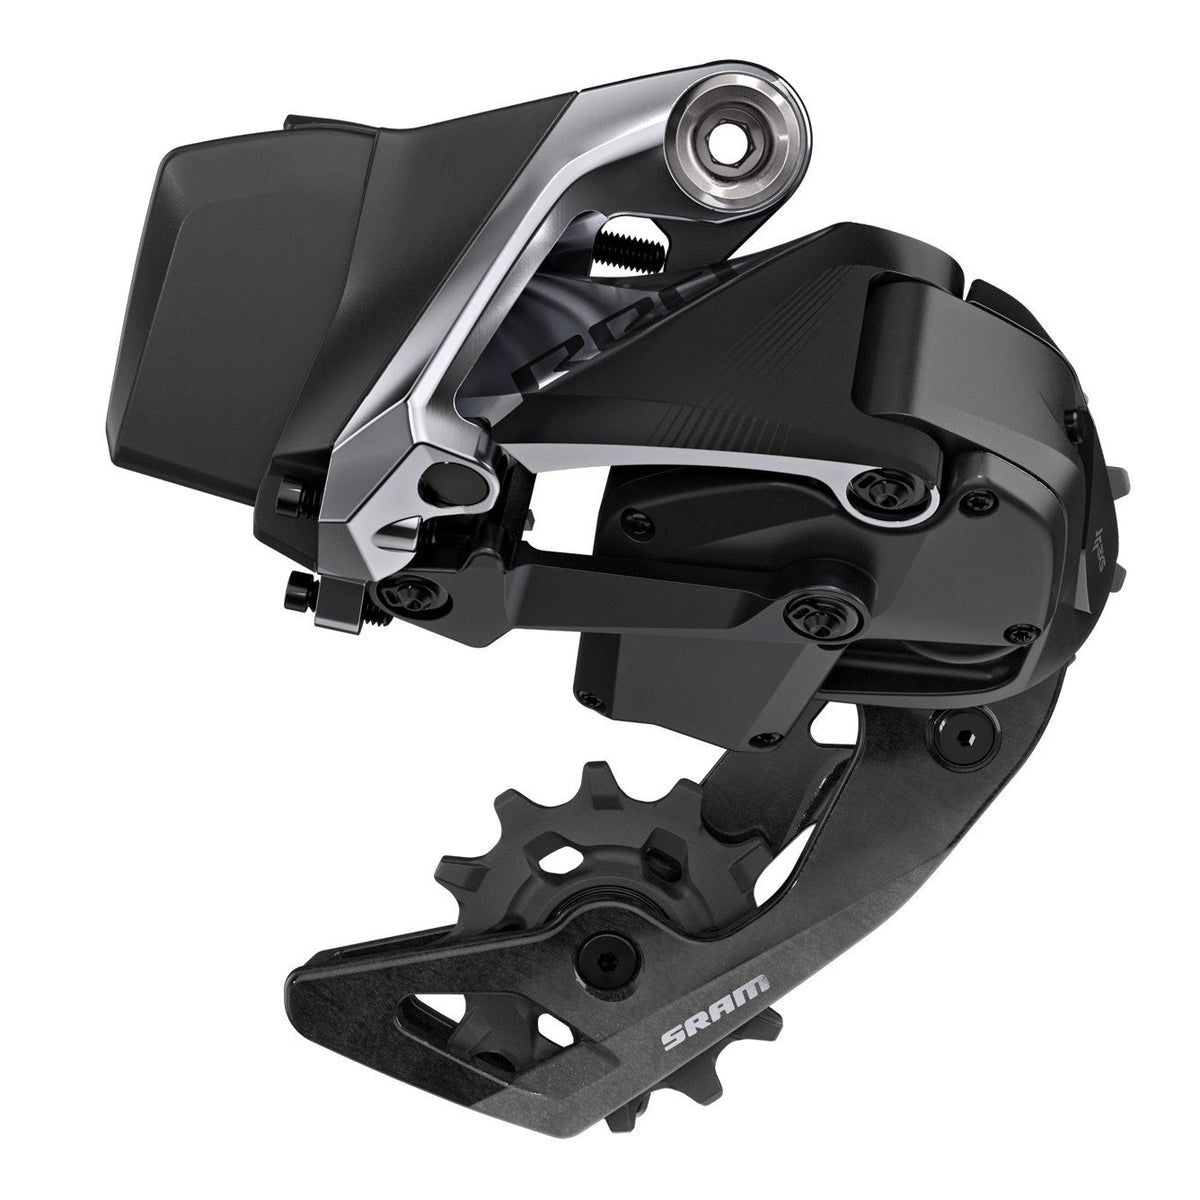 SRAM Red ETAP AXS Hydro Disc Flat Mount 1x12 Kit